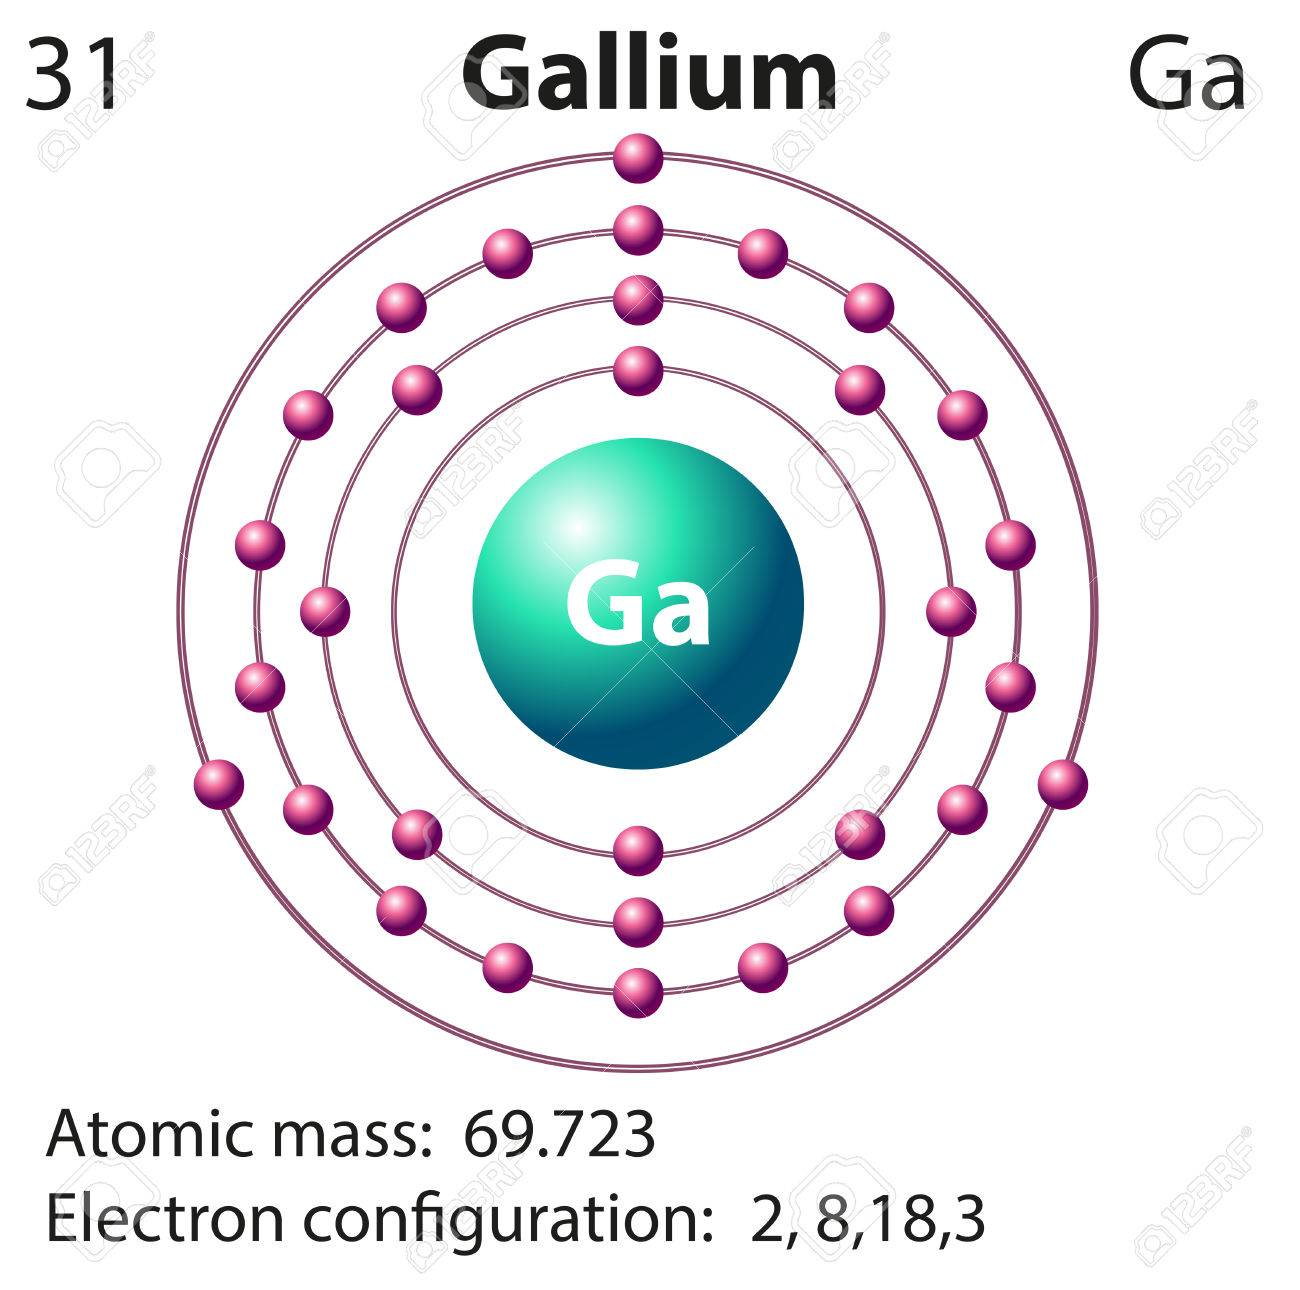 Symbol for gallium image collections symbol and sign ideas symbol and electron diagram for gallium illustration royalty free symbol and electron diagram for gallium illustration pooptronica